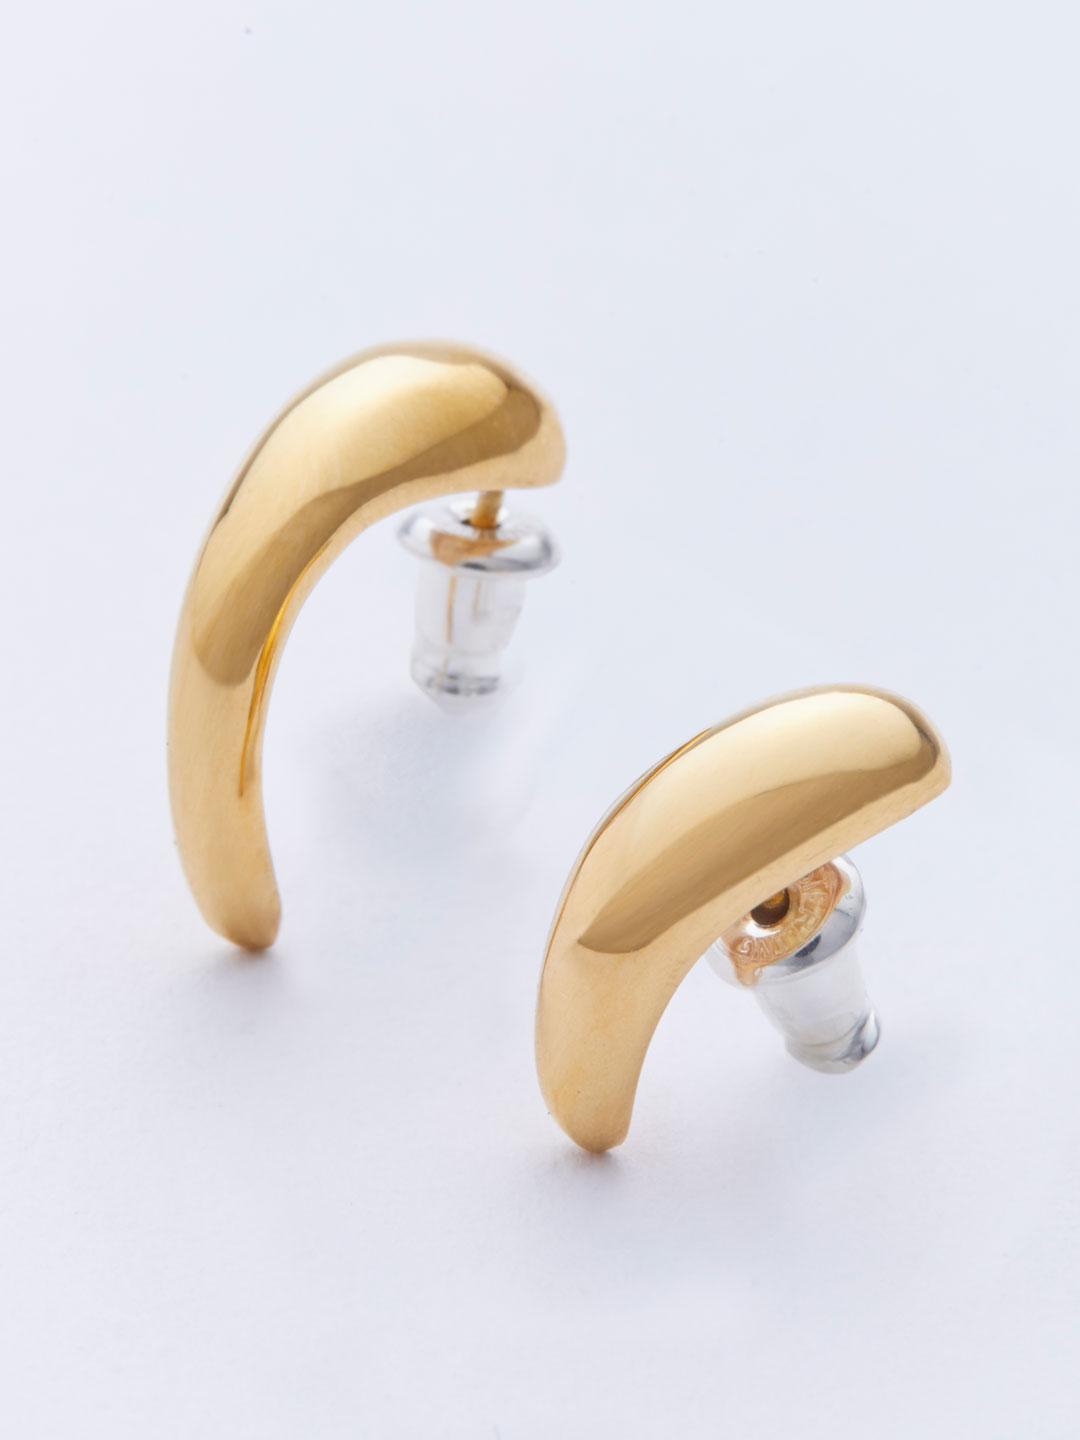 Vuelta Pierced Earrings - Gold